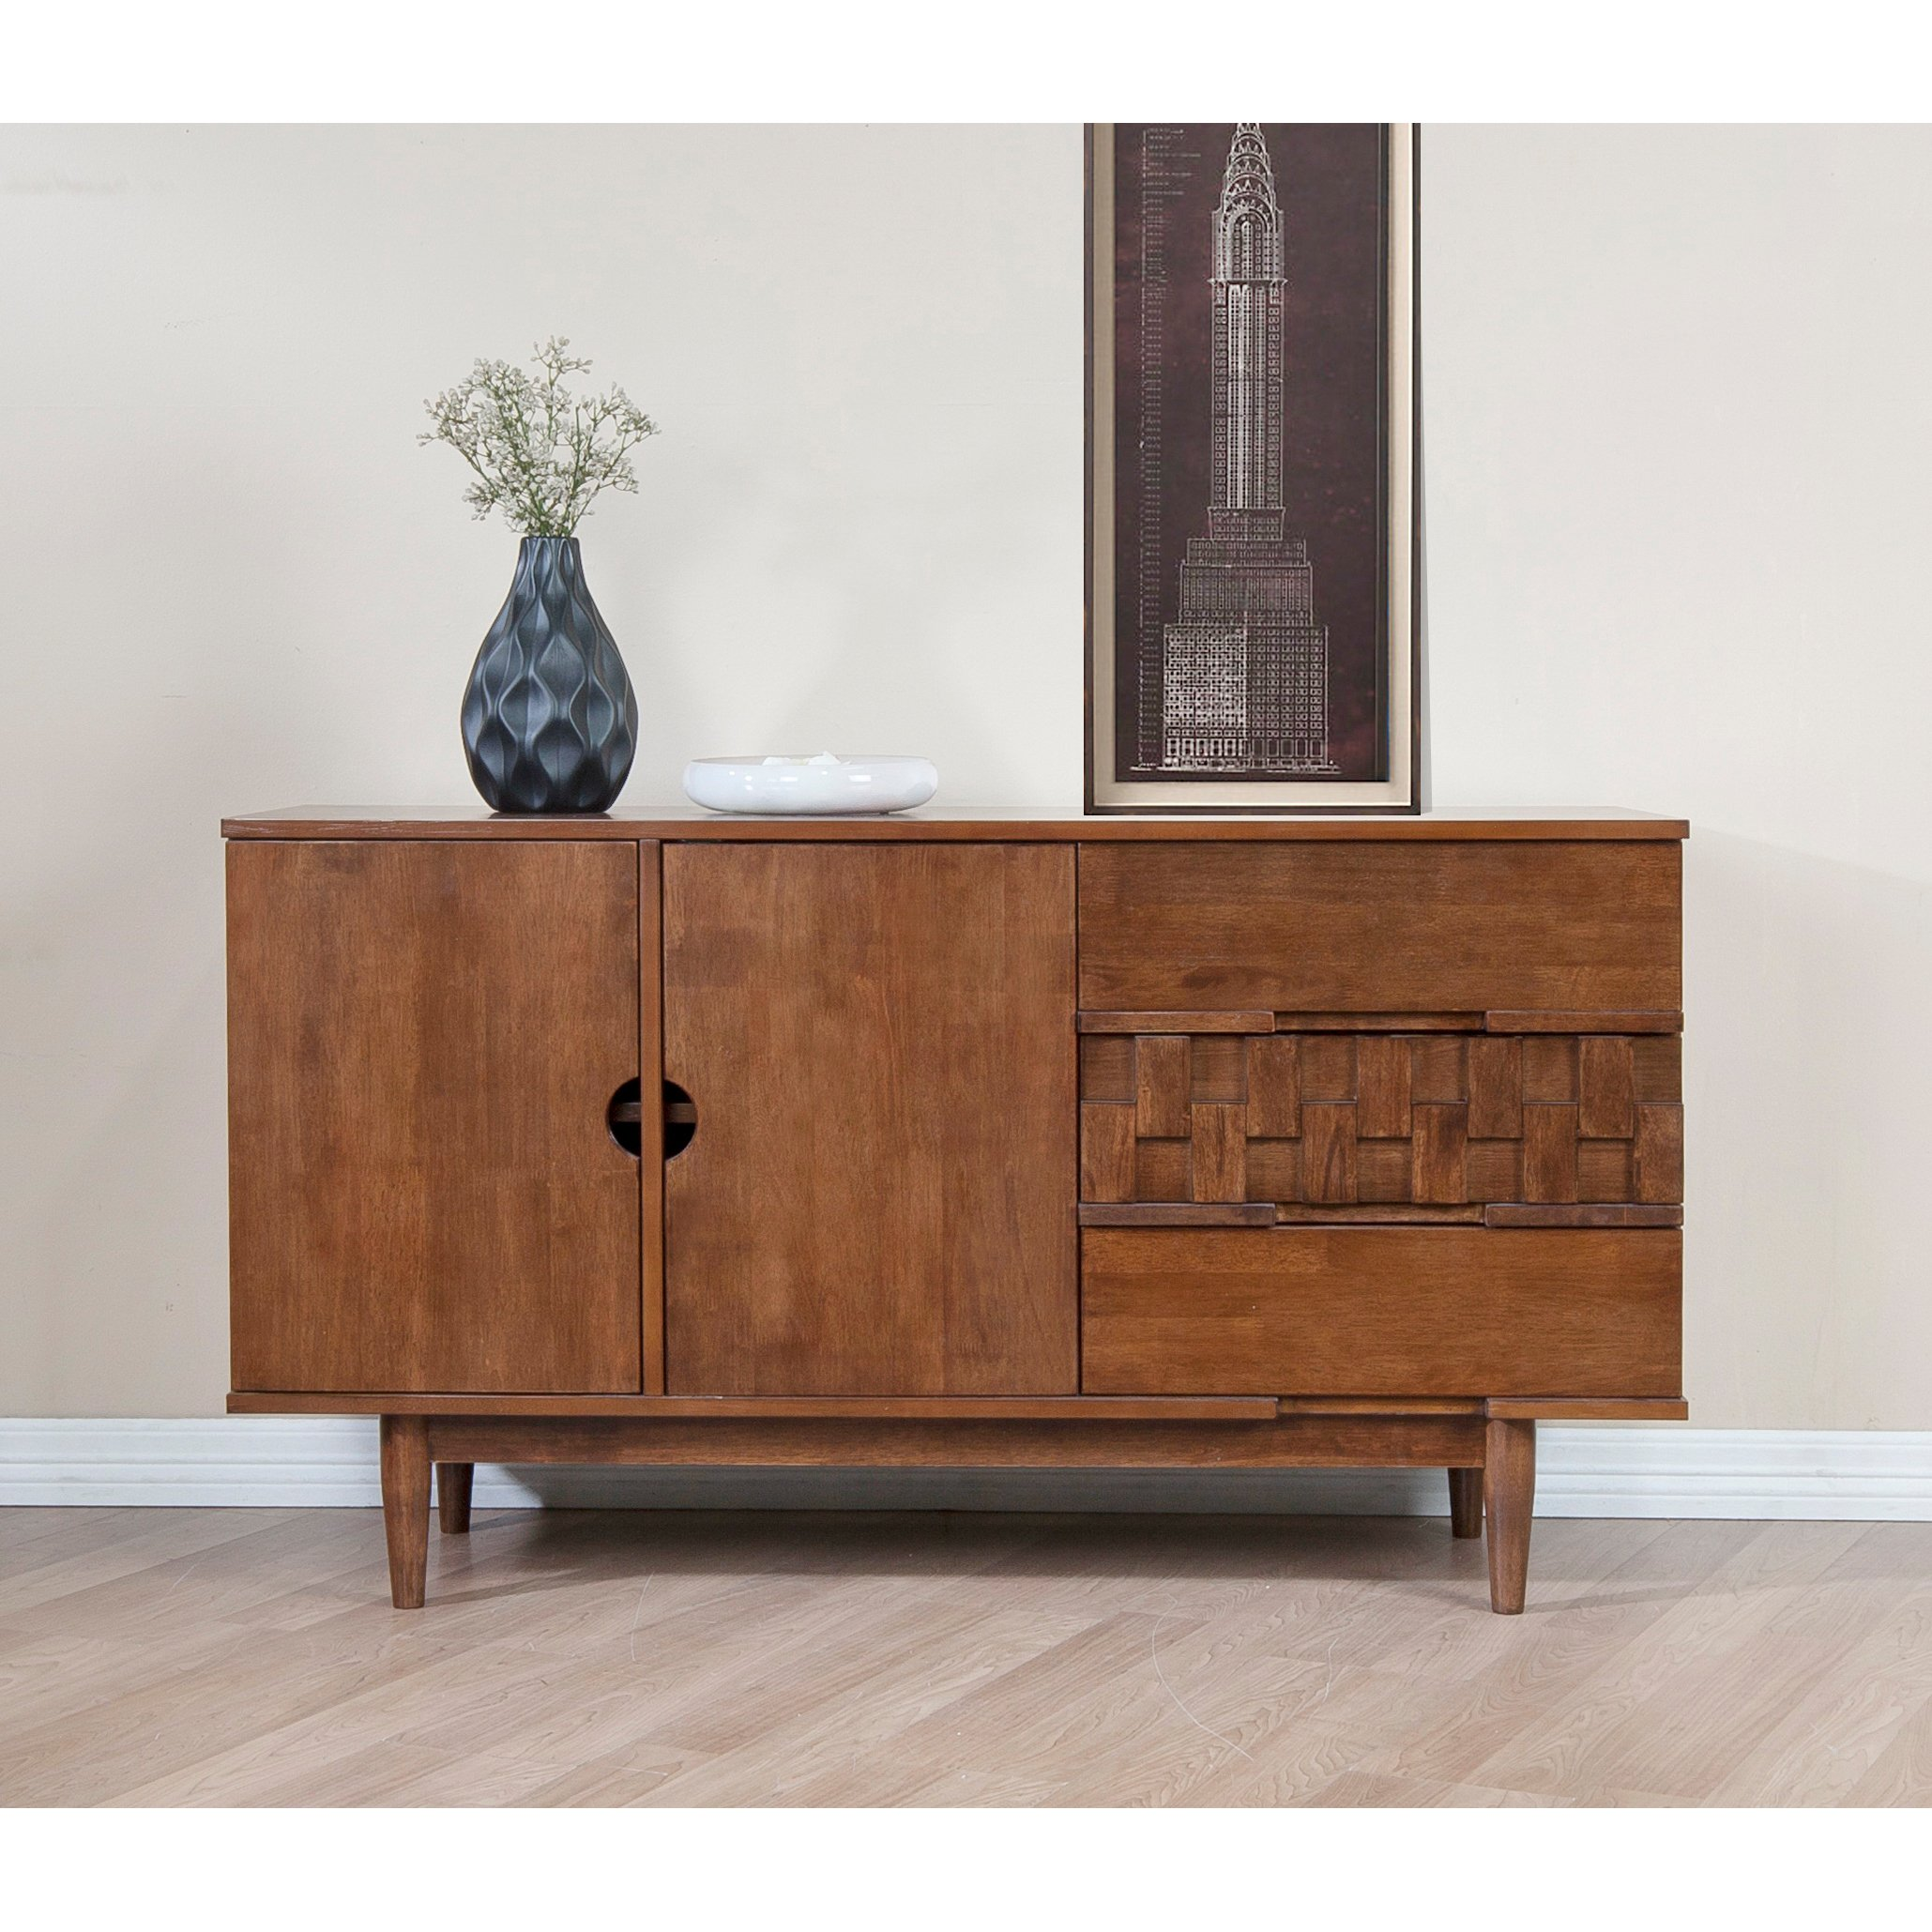 ModHaus Living Mid Century Modern 55 inch Brown Sideboard Buffet Cabinet with 2 Doors 2 Shelves and 3 Drawers - Includes Pen